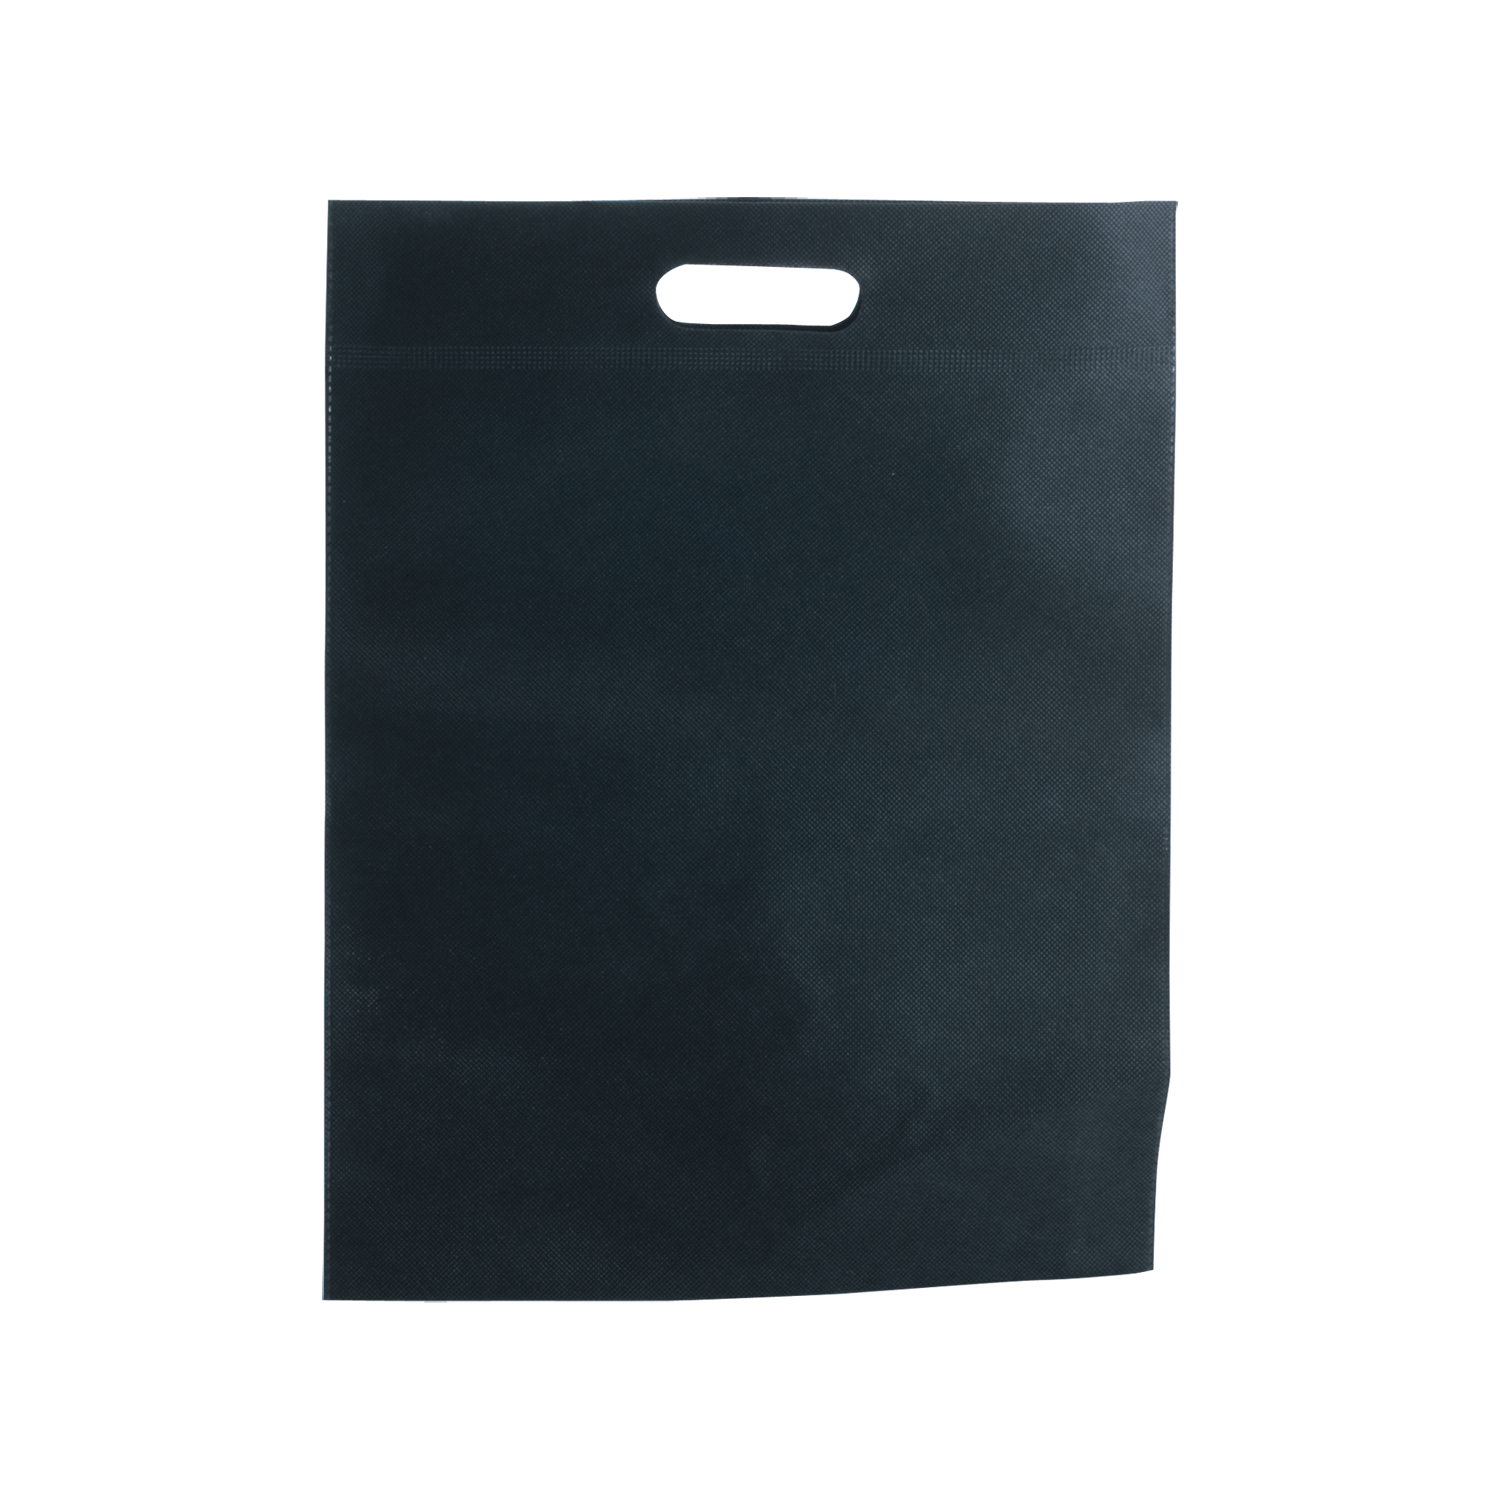 Shopping Bag 022 (Non-woven shopping bag) - hmi17022-01 (Black)